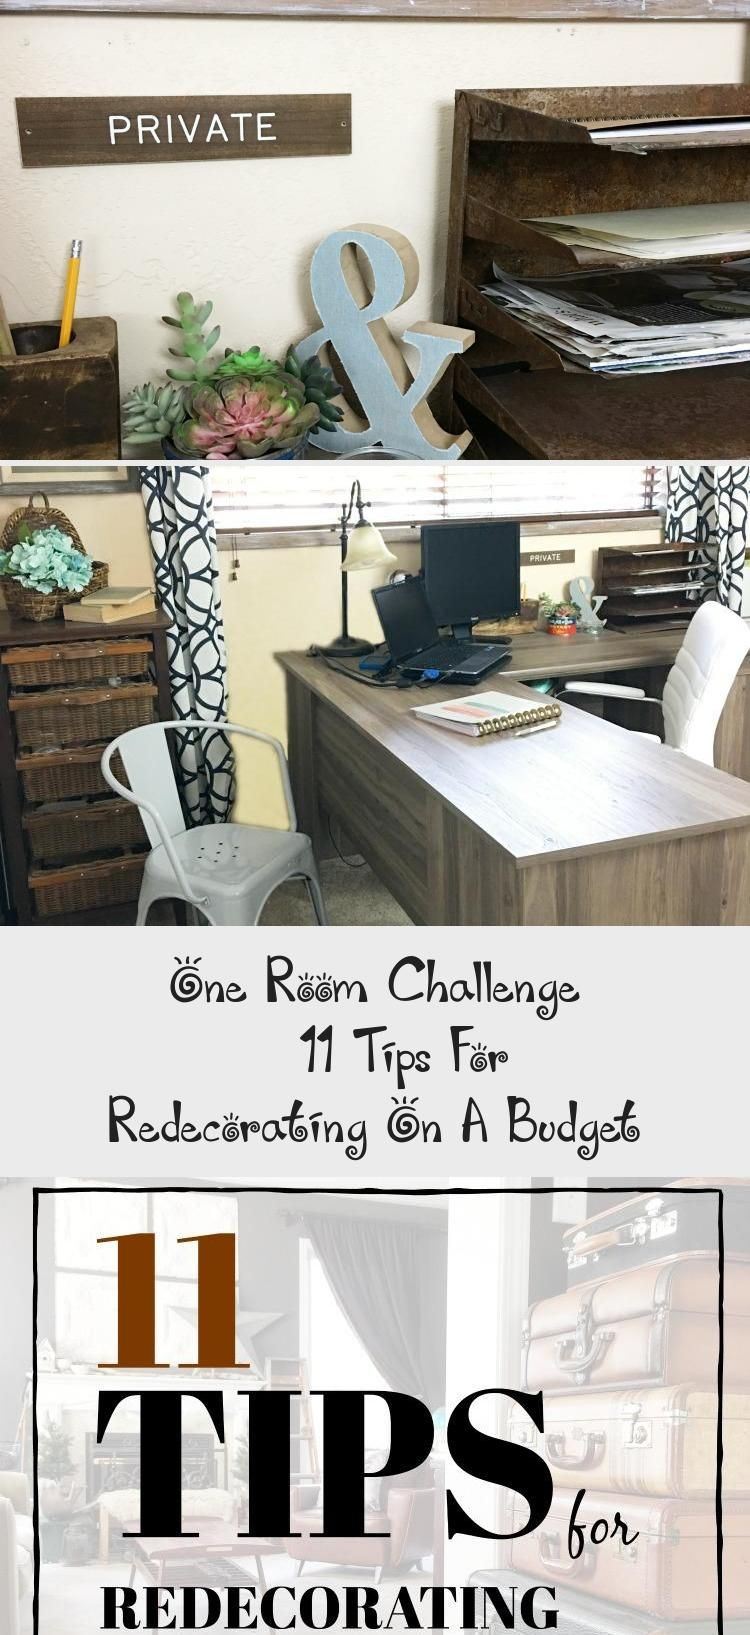 How to redecorate on a budget.  Here are some tips.  Find more on salvagesisterandmister.com #HomeDecorDIYVideosProjects #HomeDecorDIYVideosApartment #HomeDecorDIYVideosBedroom #HomeDecorDIYVideosCheap #HomeDecorDIYVideosOnABudget